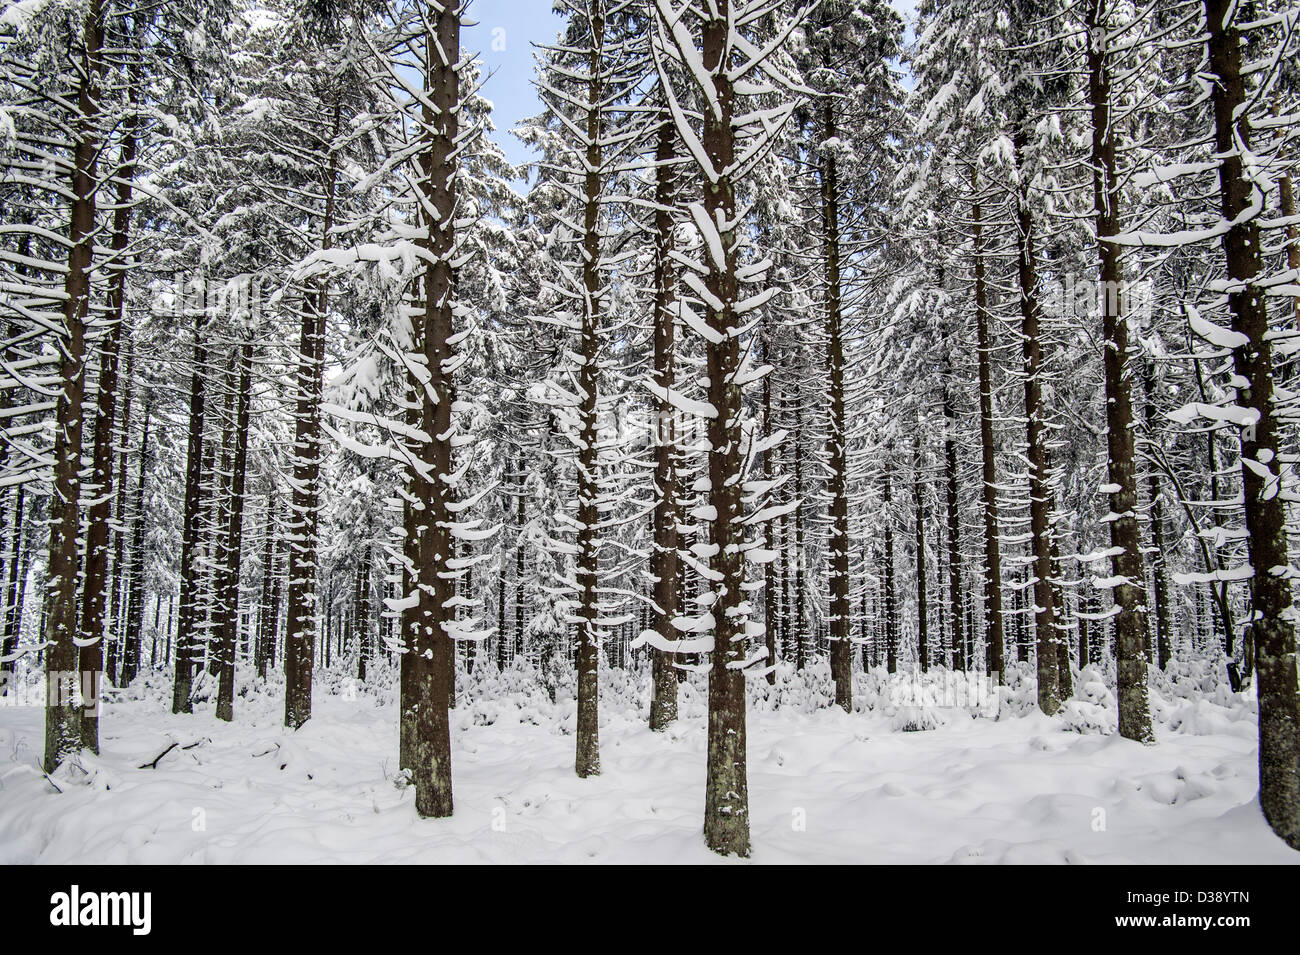 Snow covered pine trees in forest at the nature reserve - Images of pine trees in snow ...